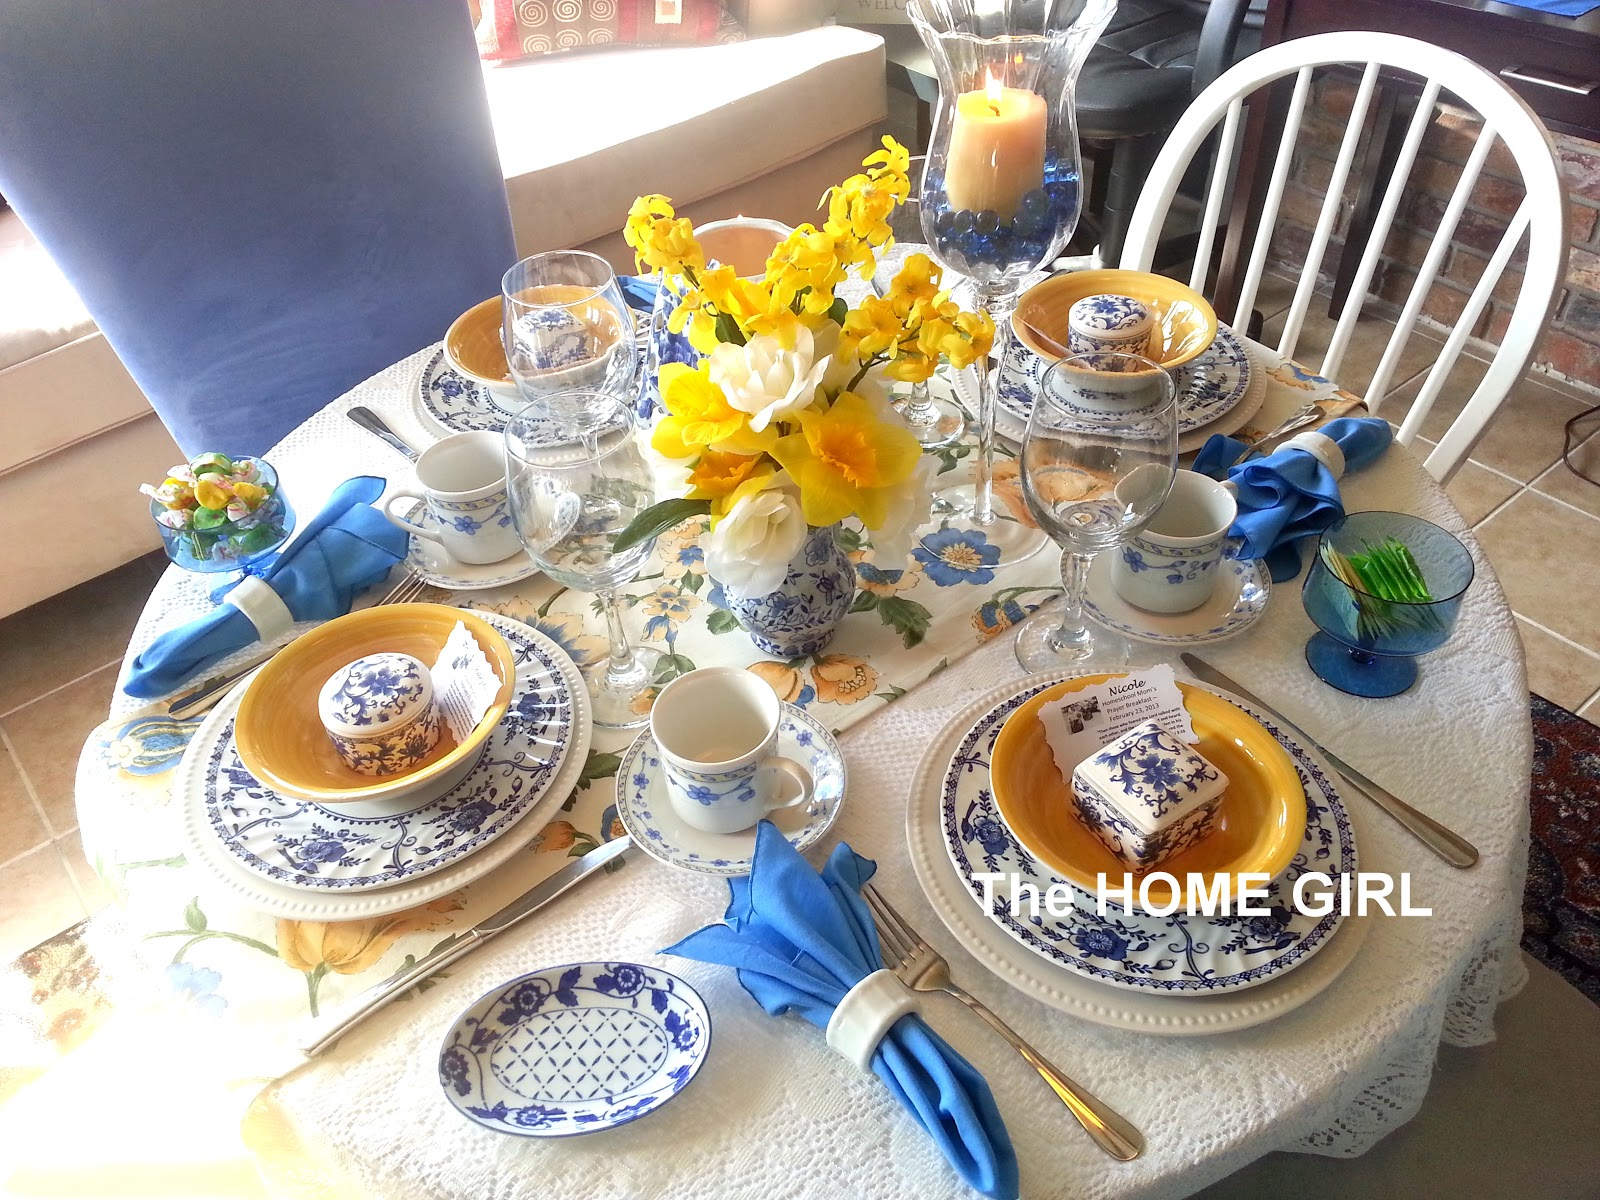 The home girl ladies prayer breakfast tablescape for Breakfast table decor